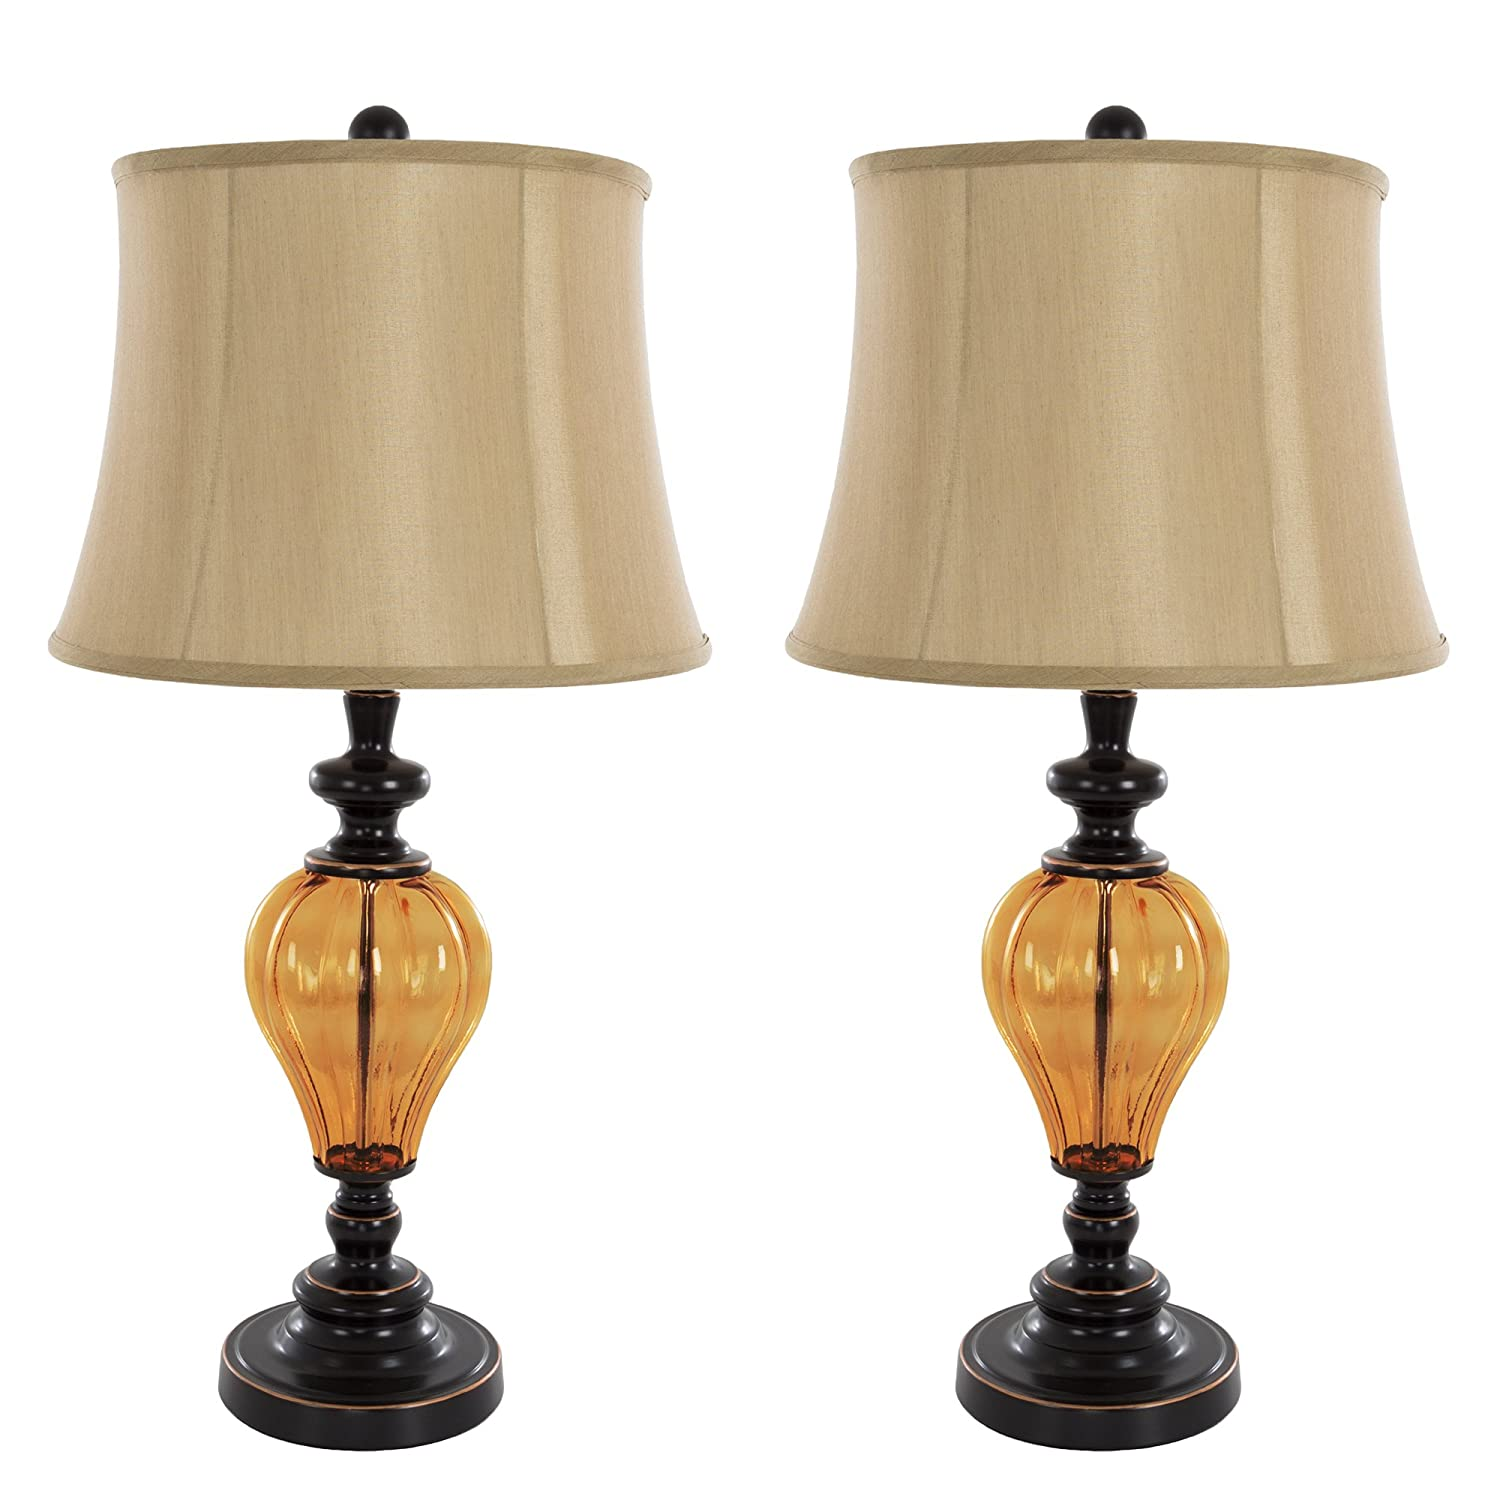 Table Lamps Set of 2, Amber Glass (2 LED Bulbs included) by Lavish Home